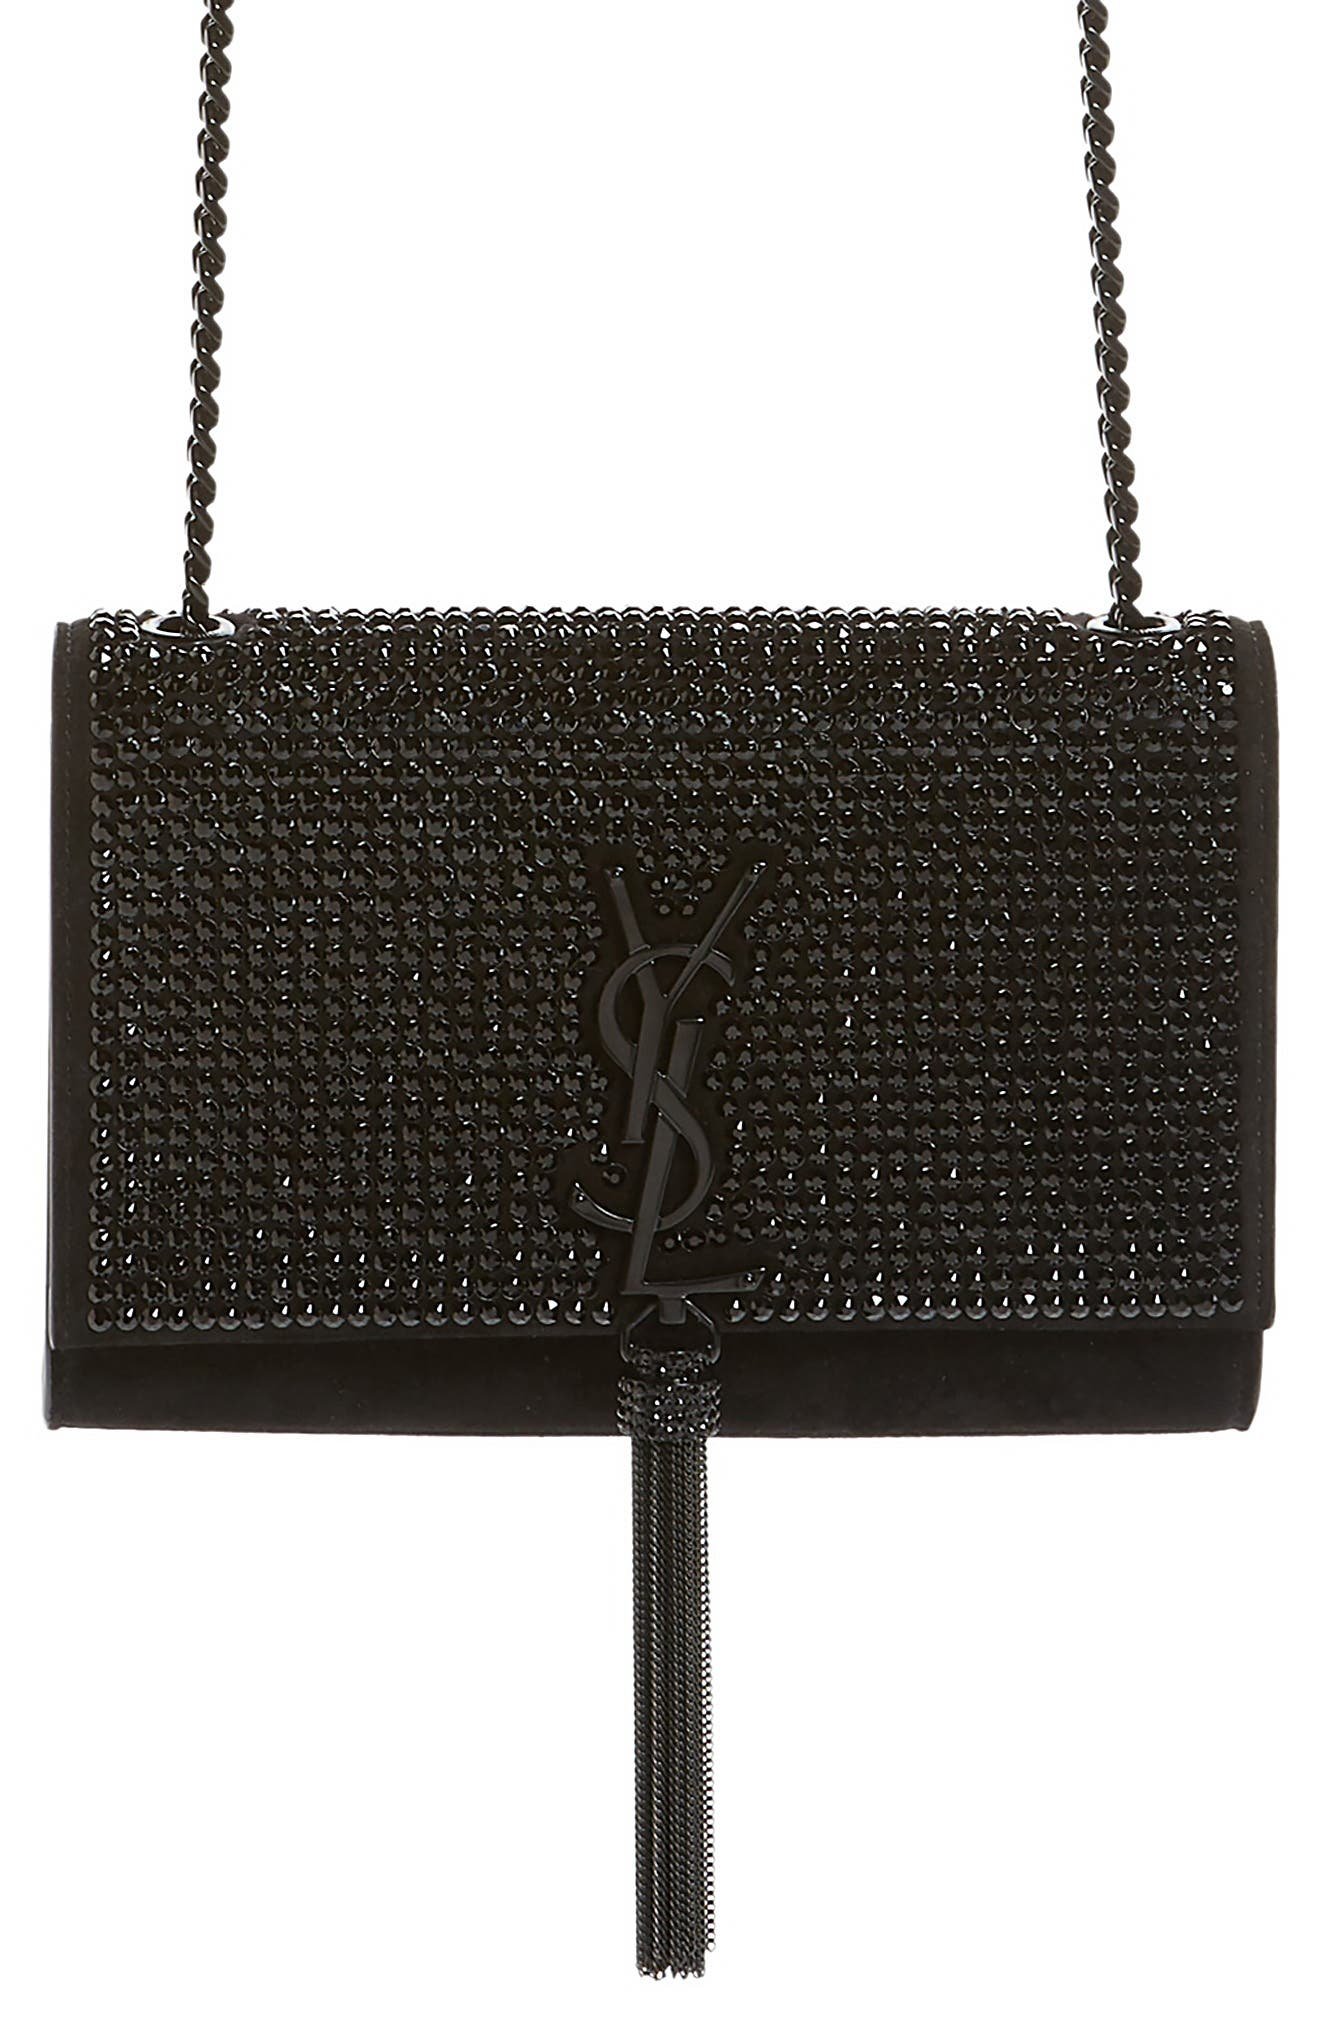 Small Kate Crystal Embellished Crossbody Bag,                             Main thumbnail 1, color,                             Nero/ Jet